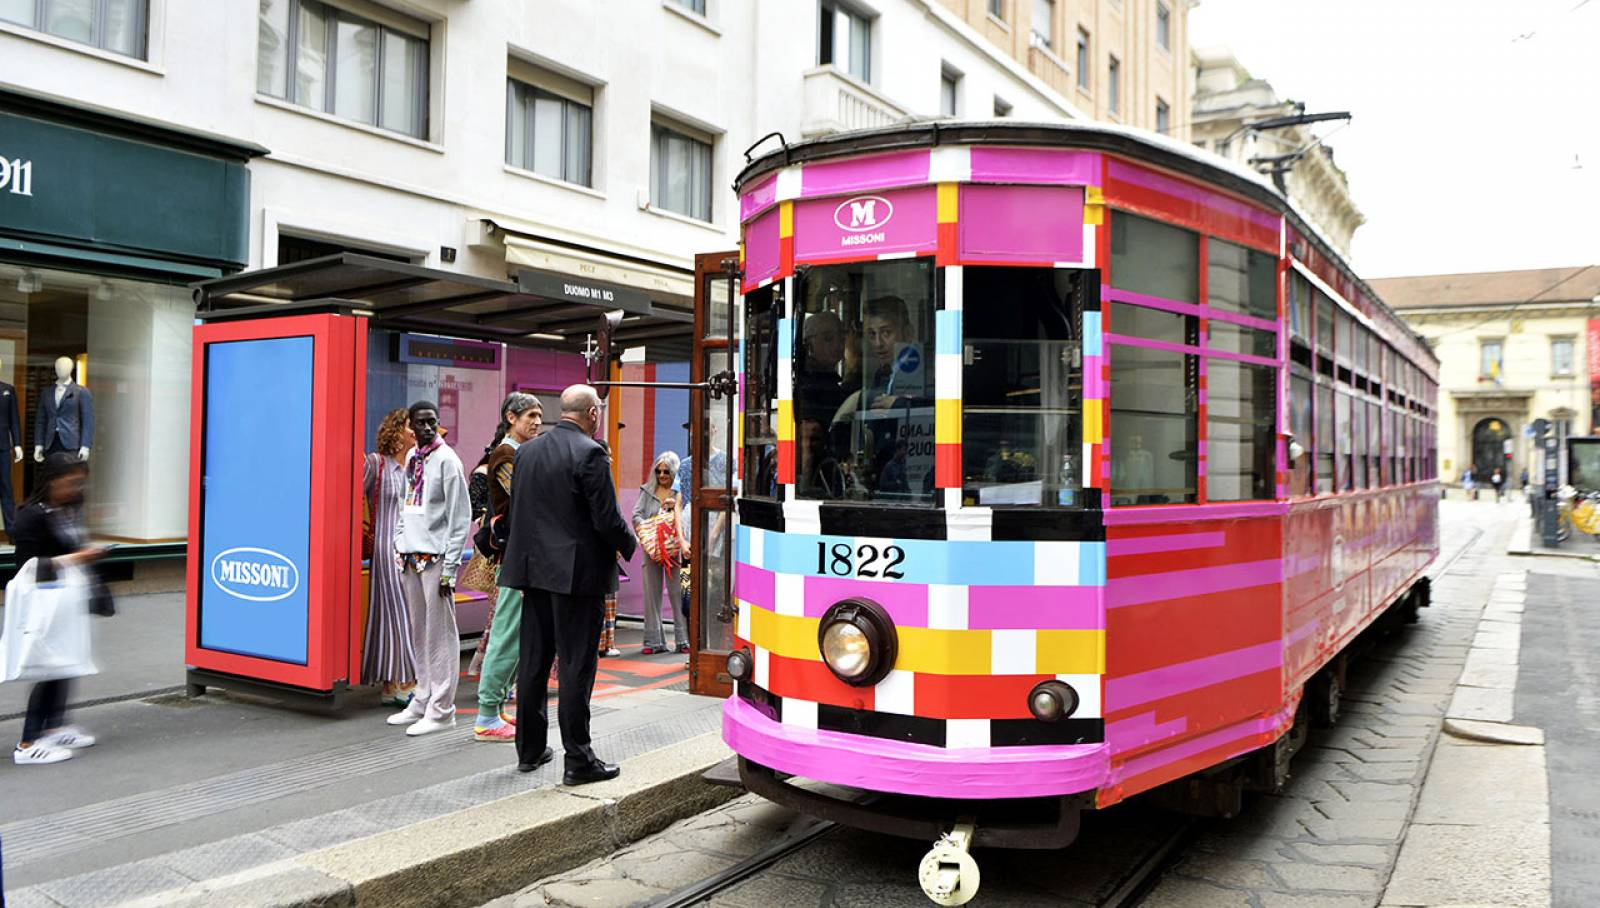 Out of Home advertising IGPDecaux special tram in Milan for M Missoni